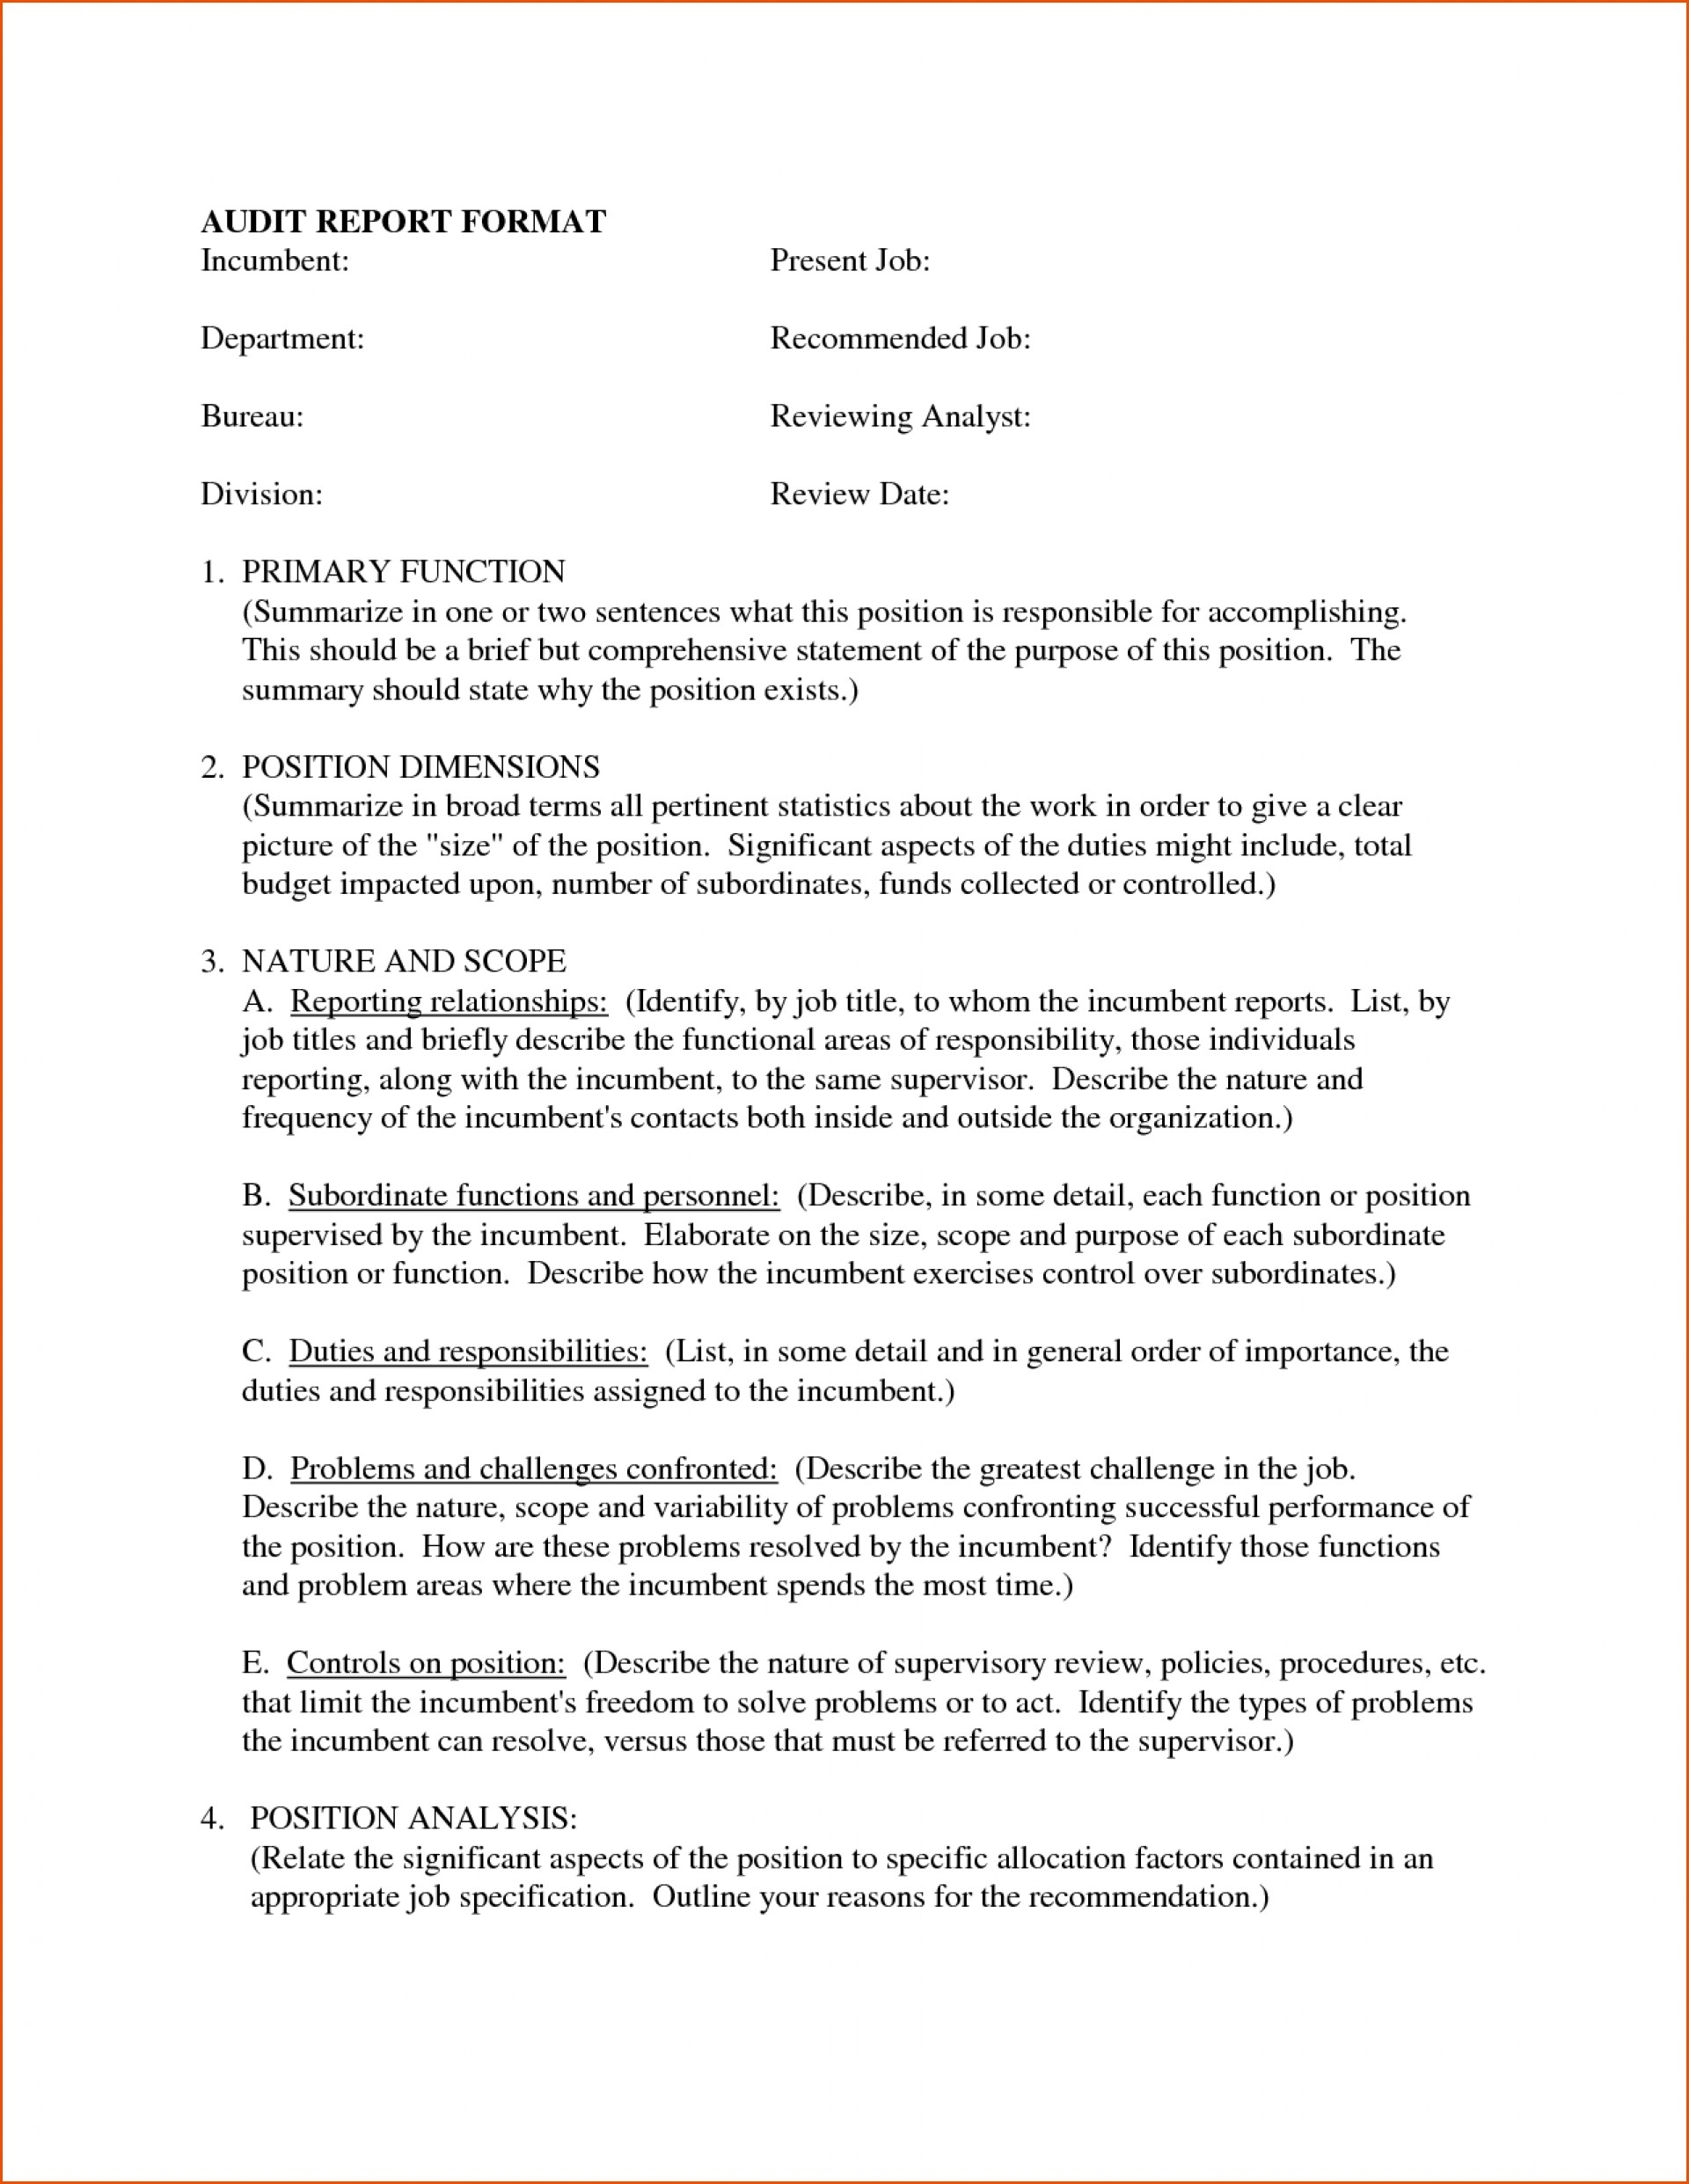 010 Business Report Format I0 Which List Best Describes The Organization Of An Argumentative Essay Fearsome Brainly 1920